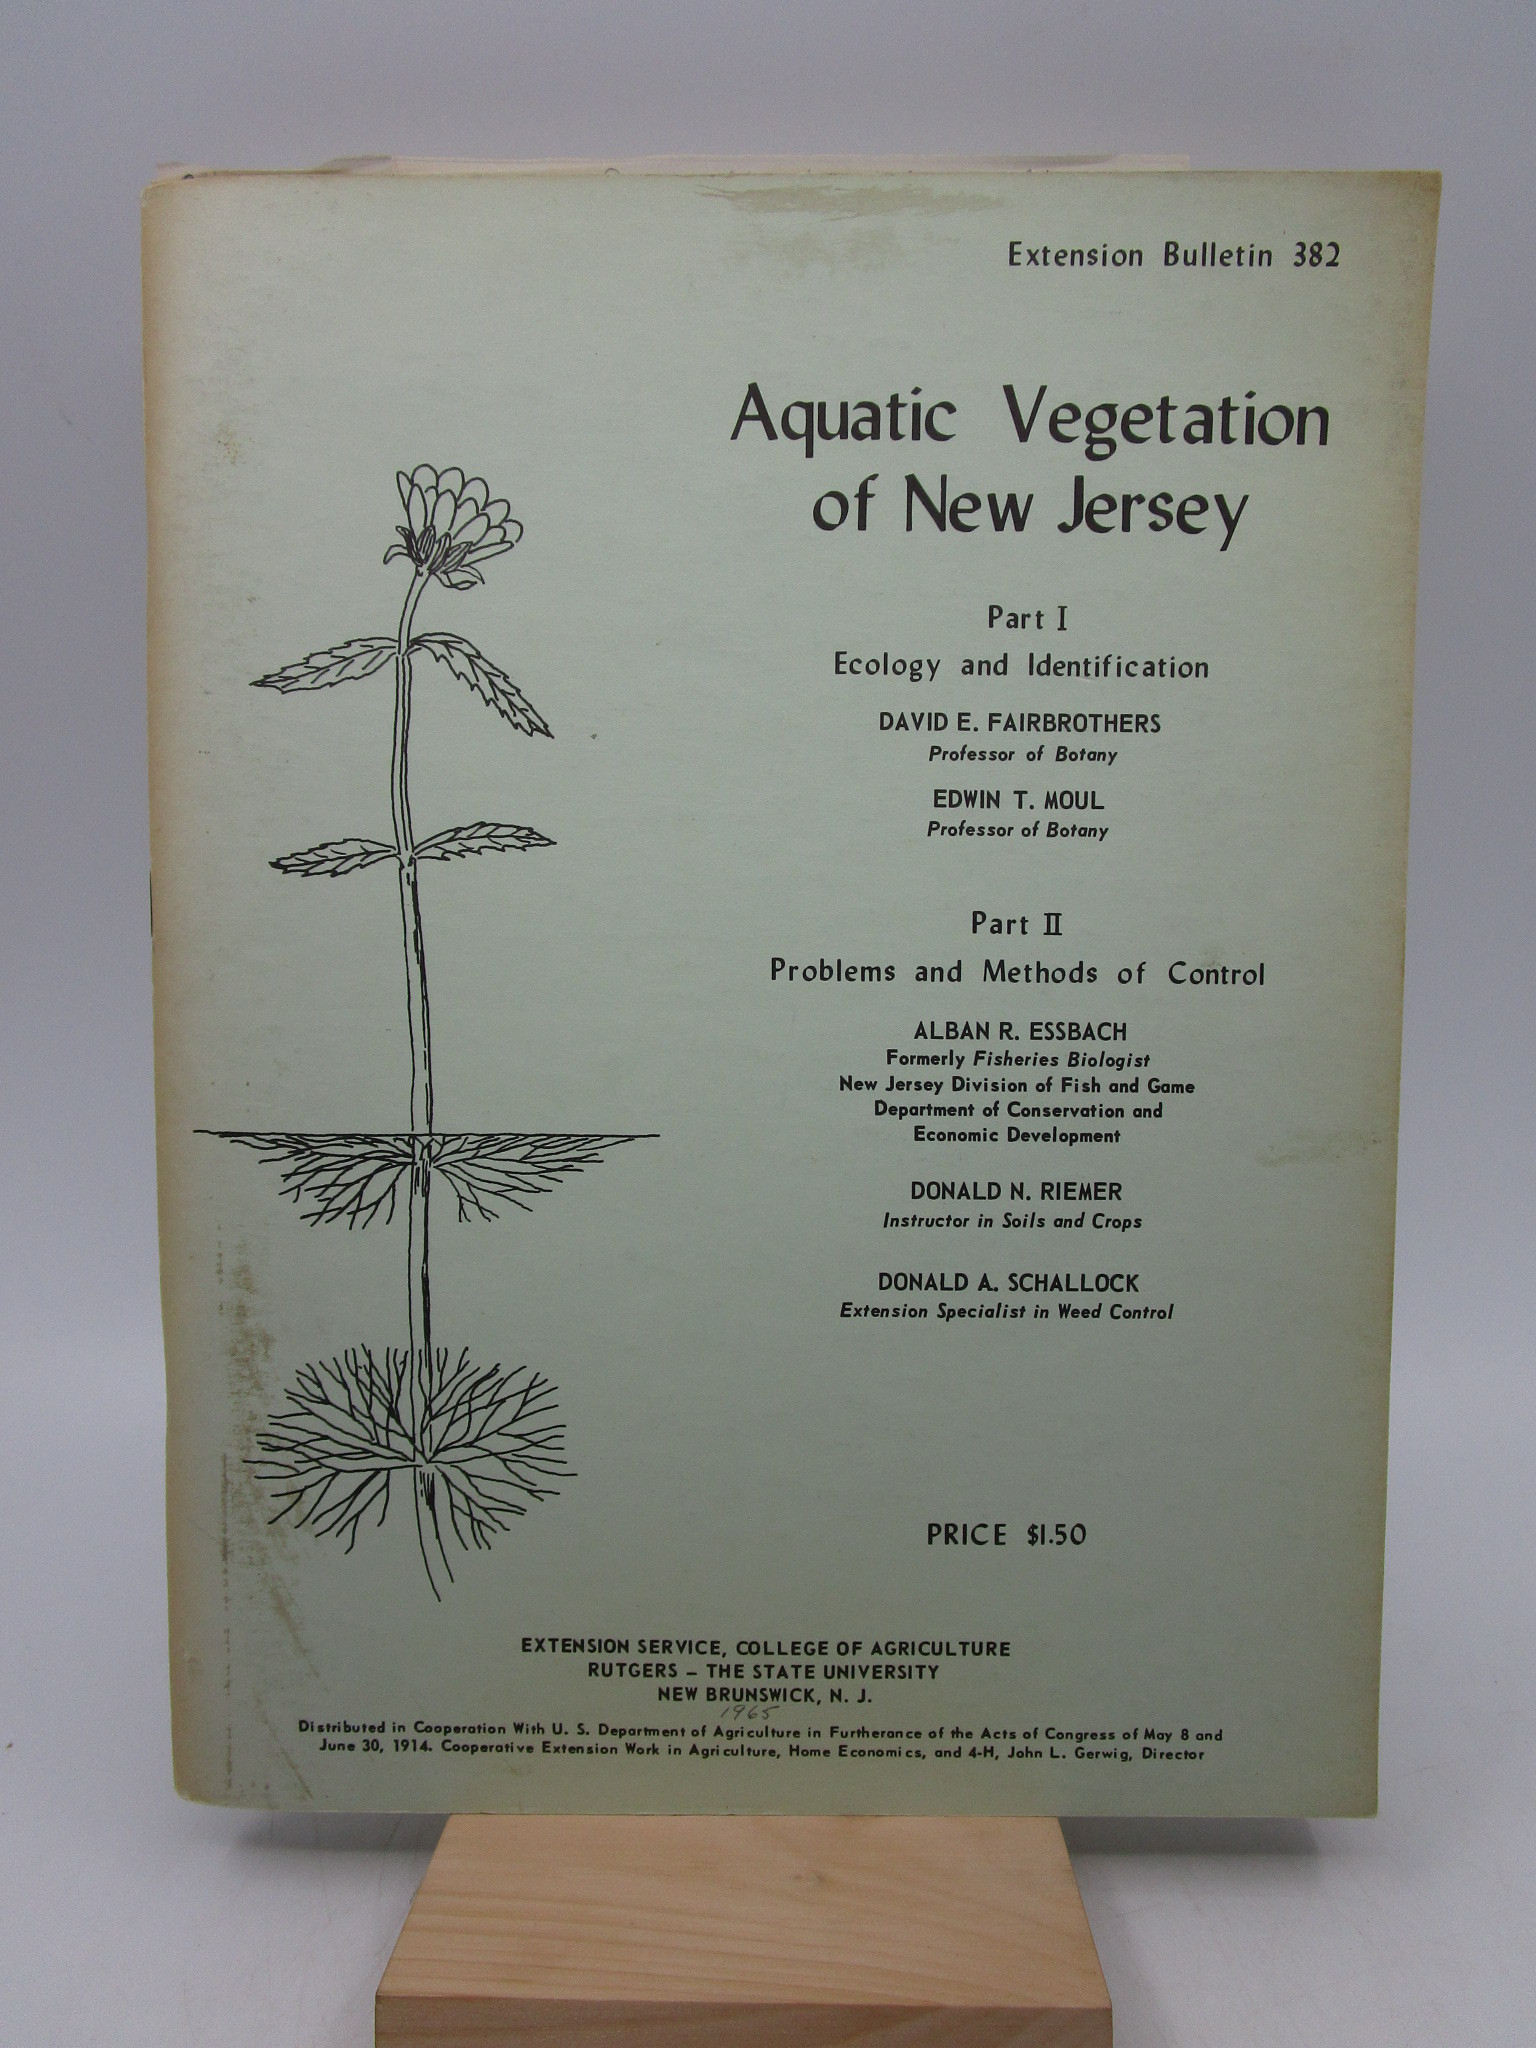 Image for Aquatic Vegetation of New Jersey: Extension Bulletin 382 (First Edition)